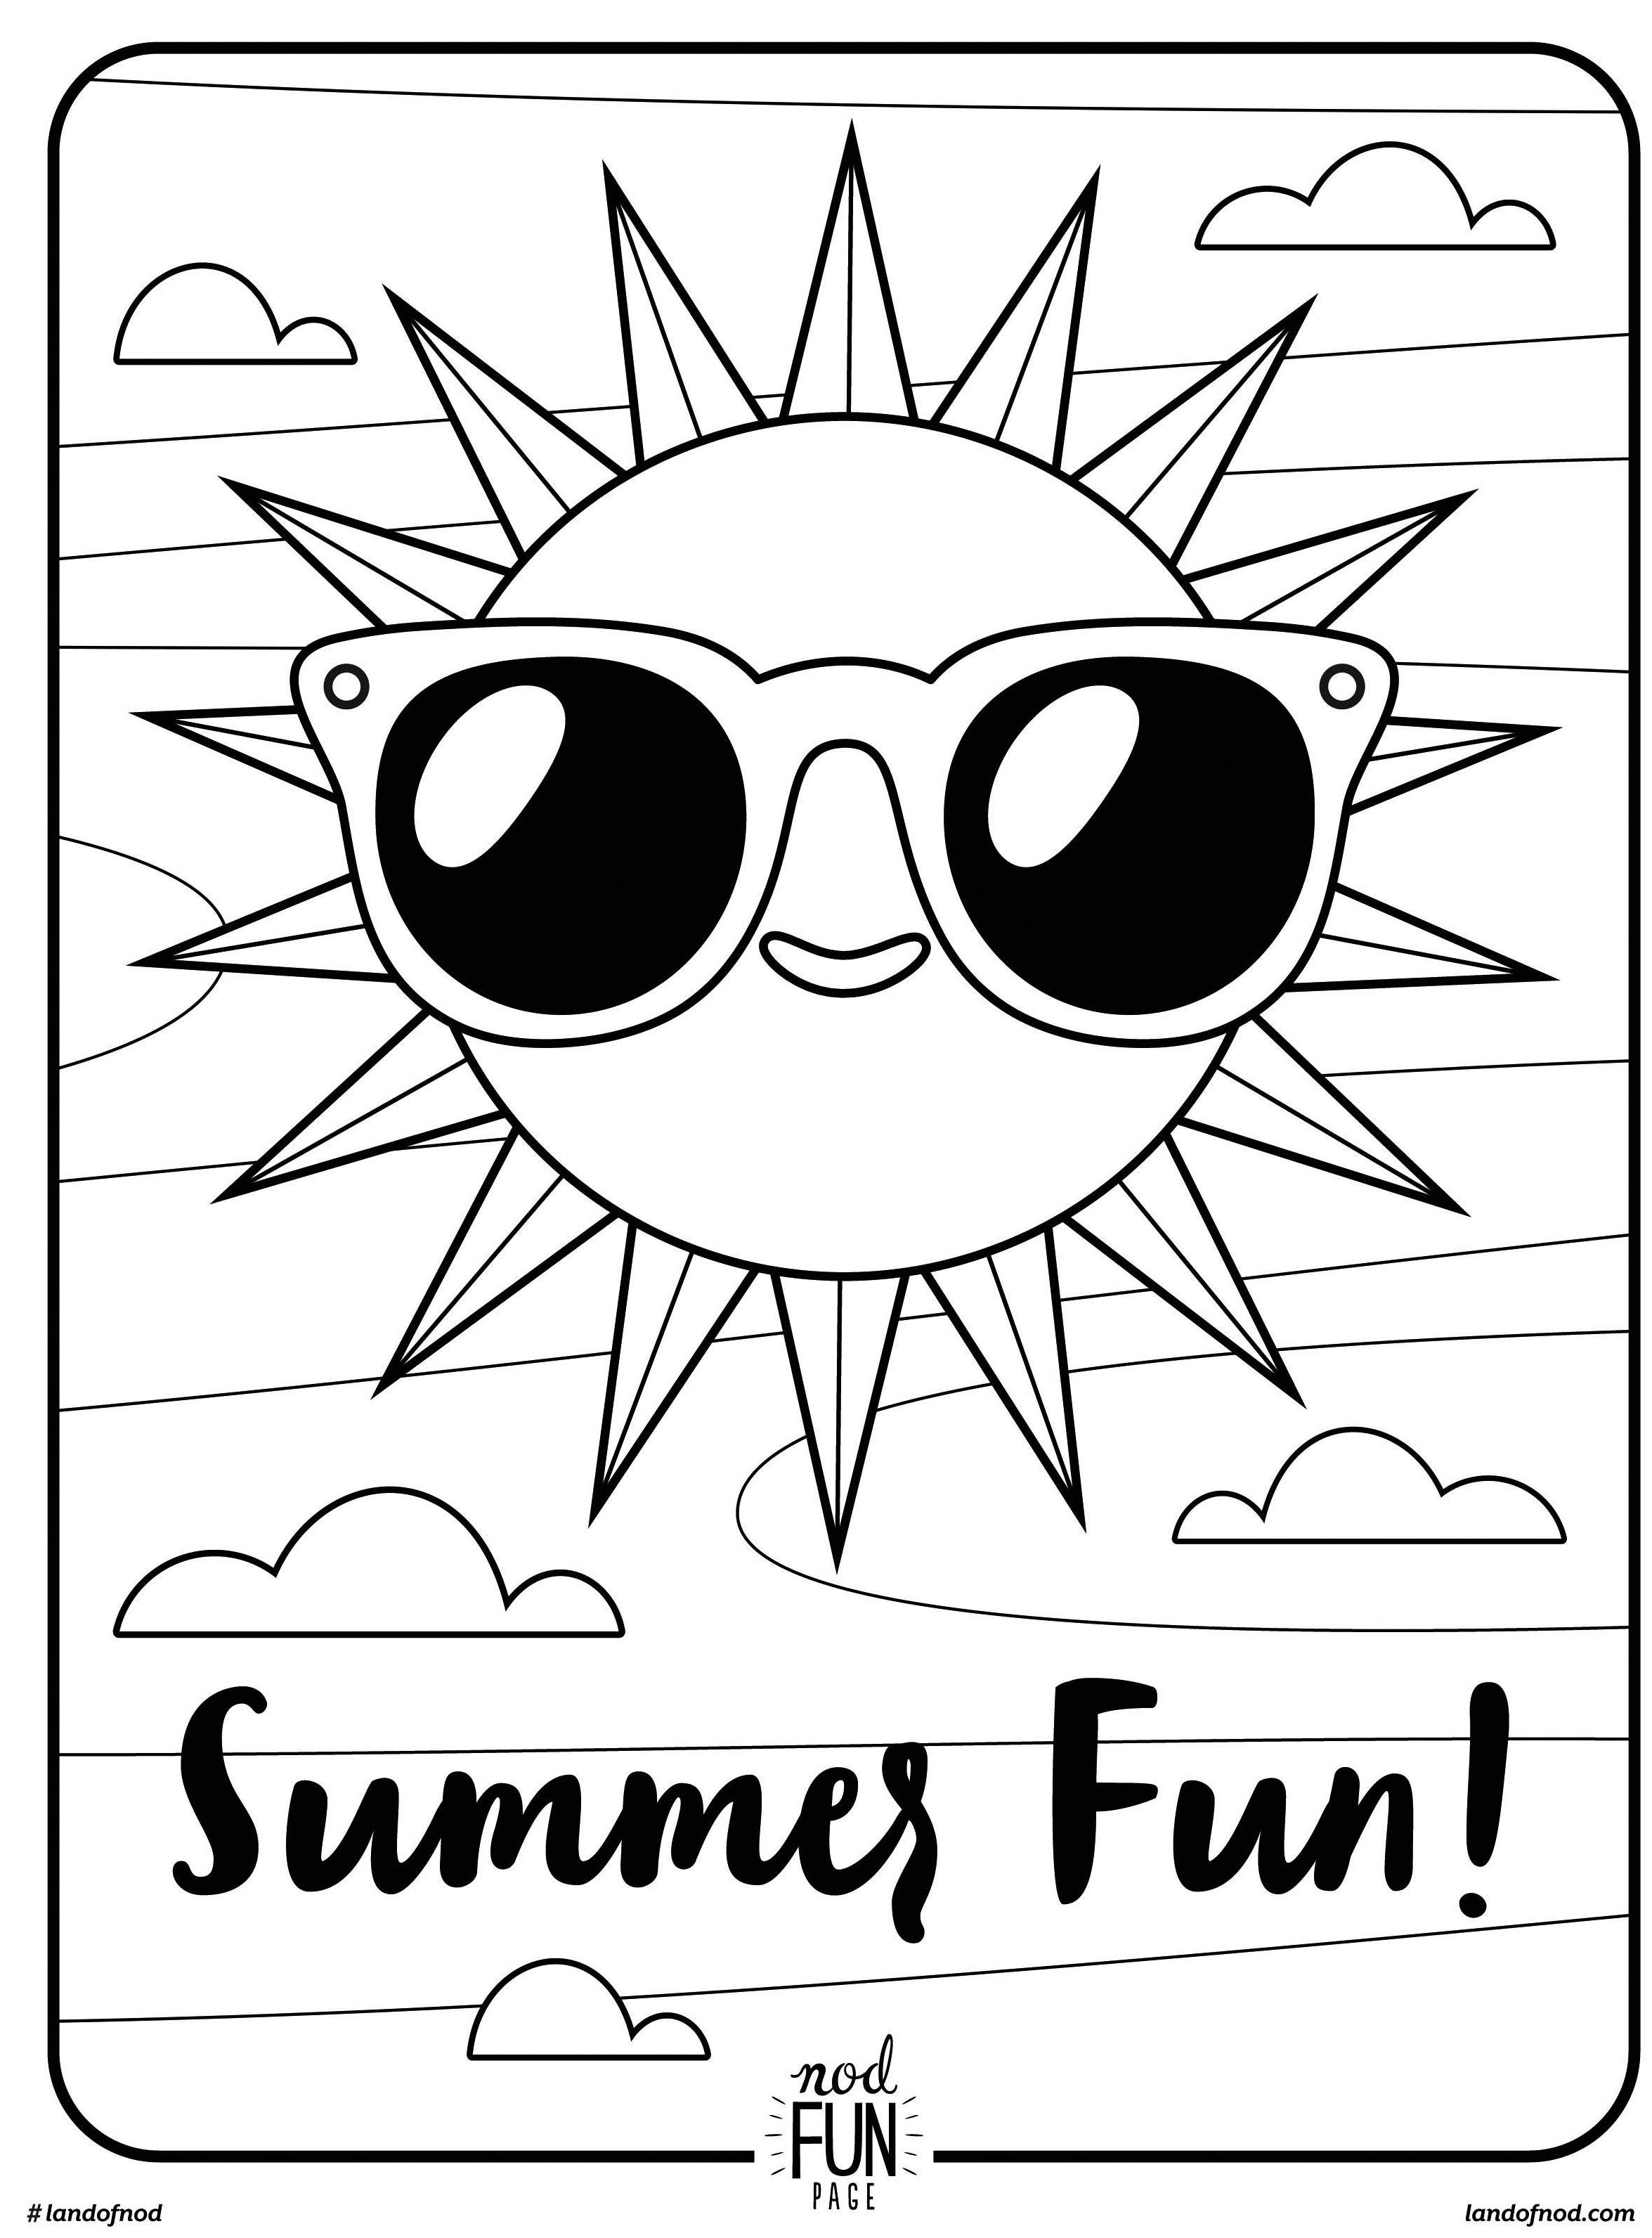 Free Printable Coloring Page: Summer Fun | Free printable, Crayons ...